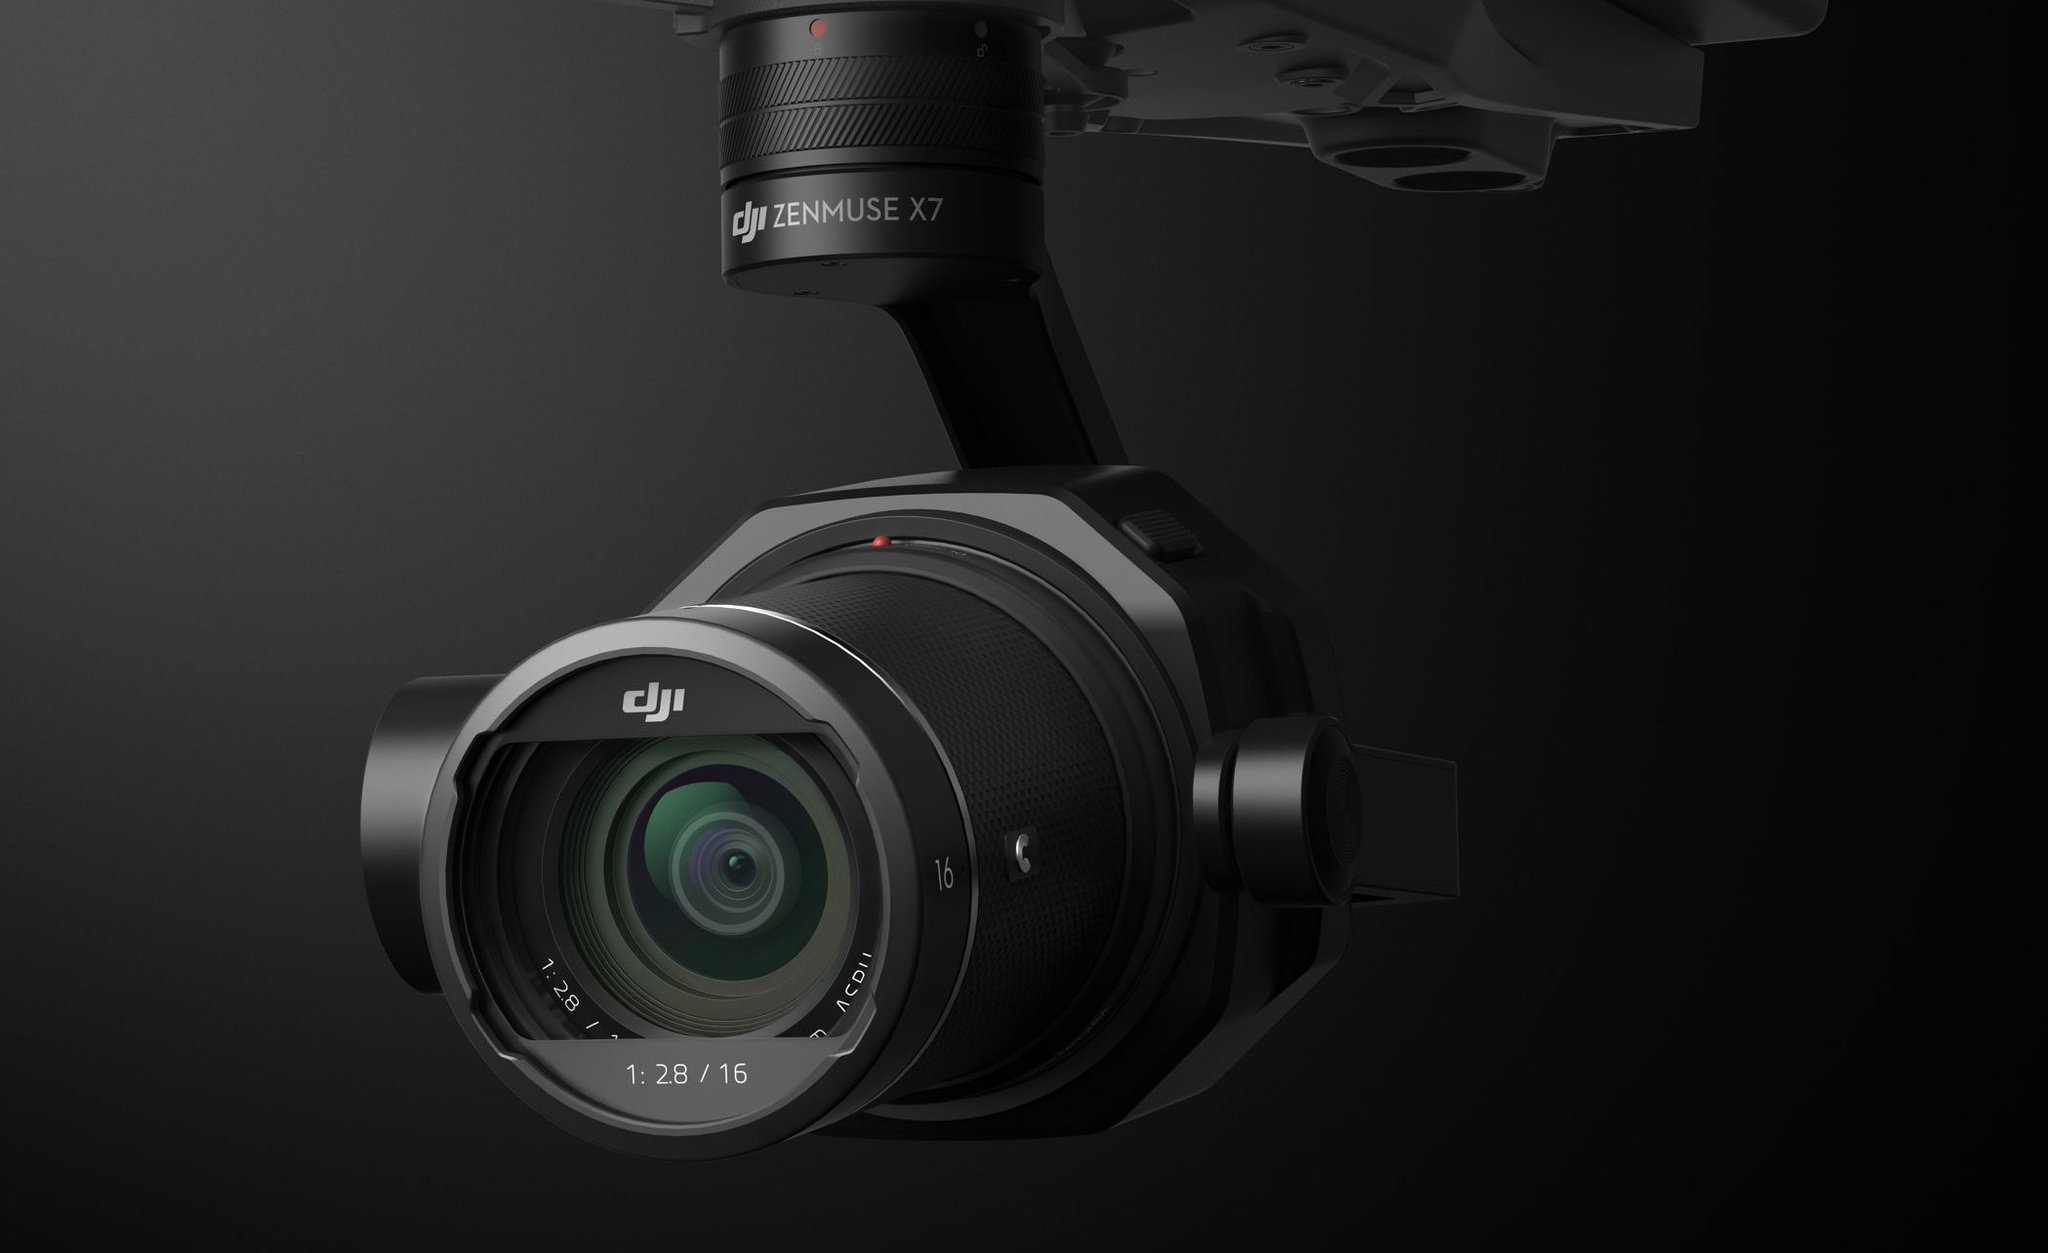 DJI's new interchangeable lens drone camera takes aim at film makers https://t.co/B8JQ9lV3sM by @etherington https://t.co/JyYPYwlXEw